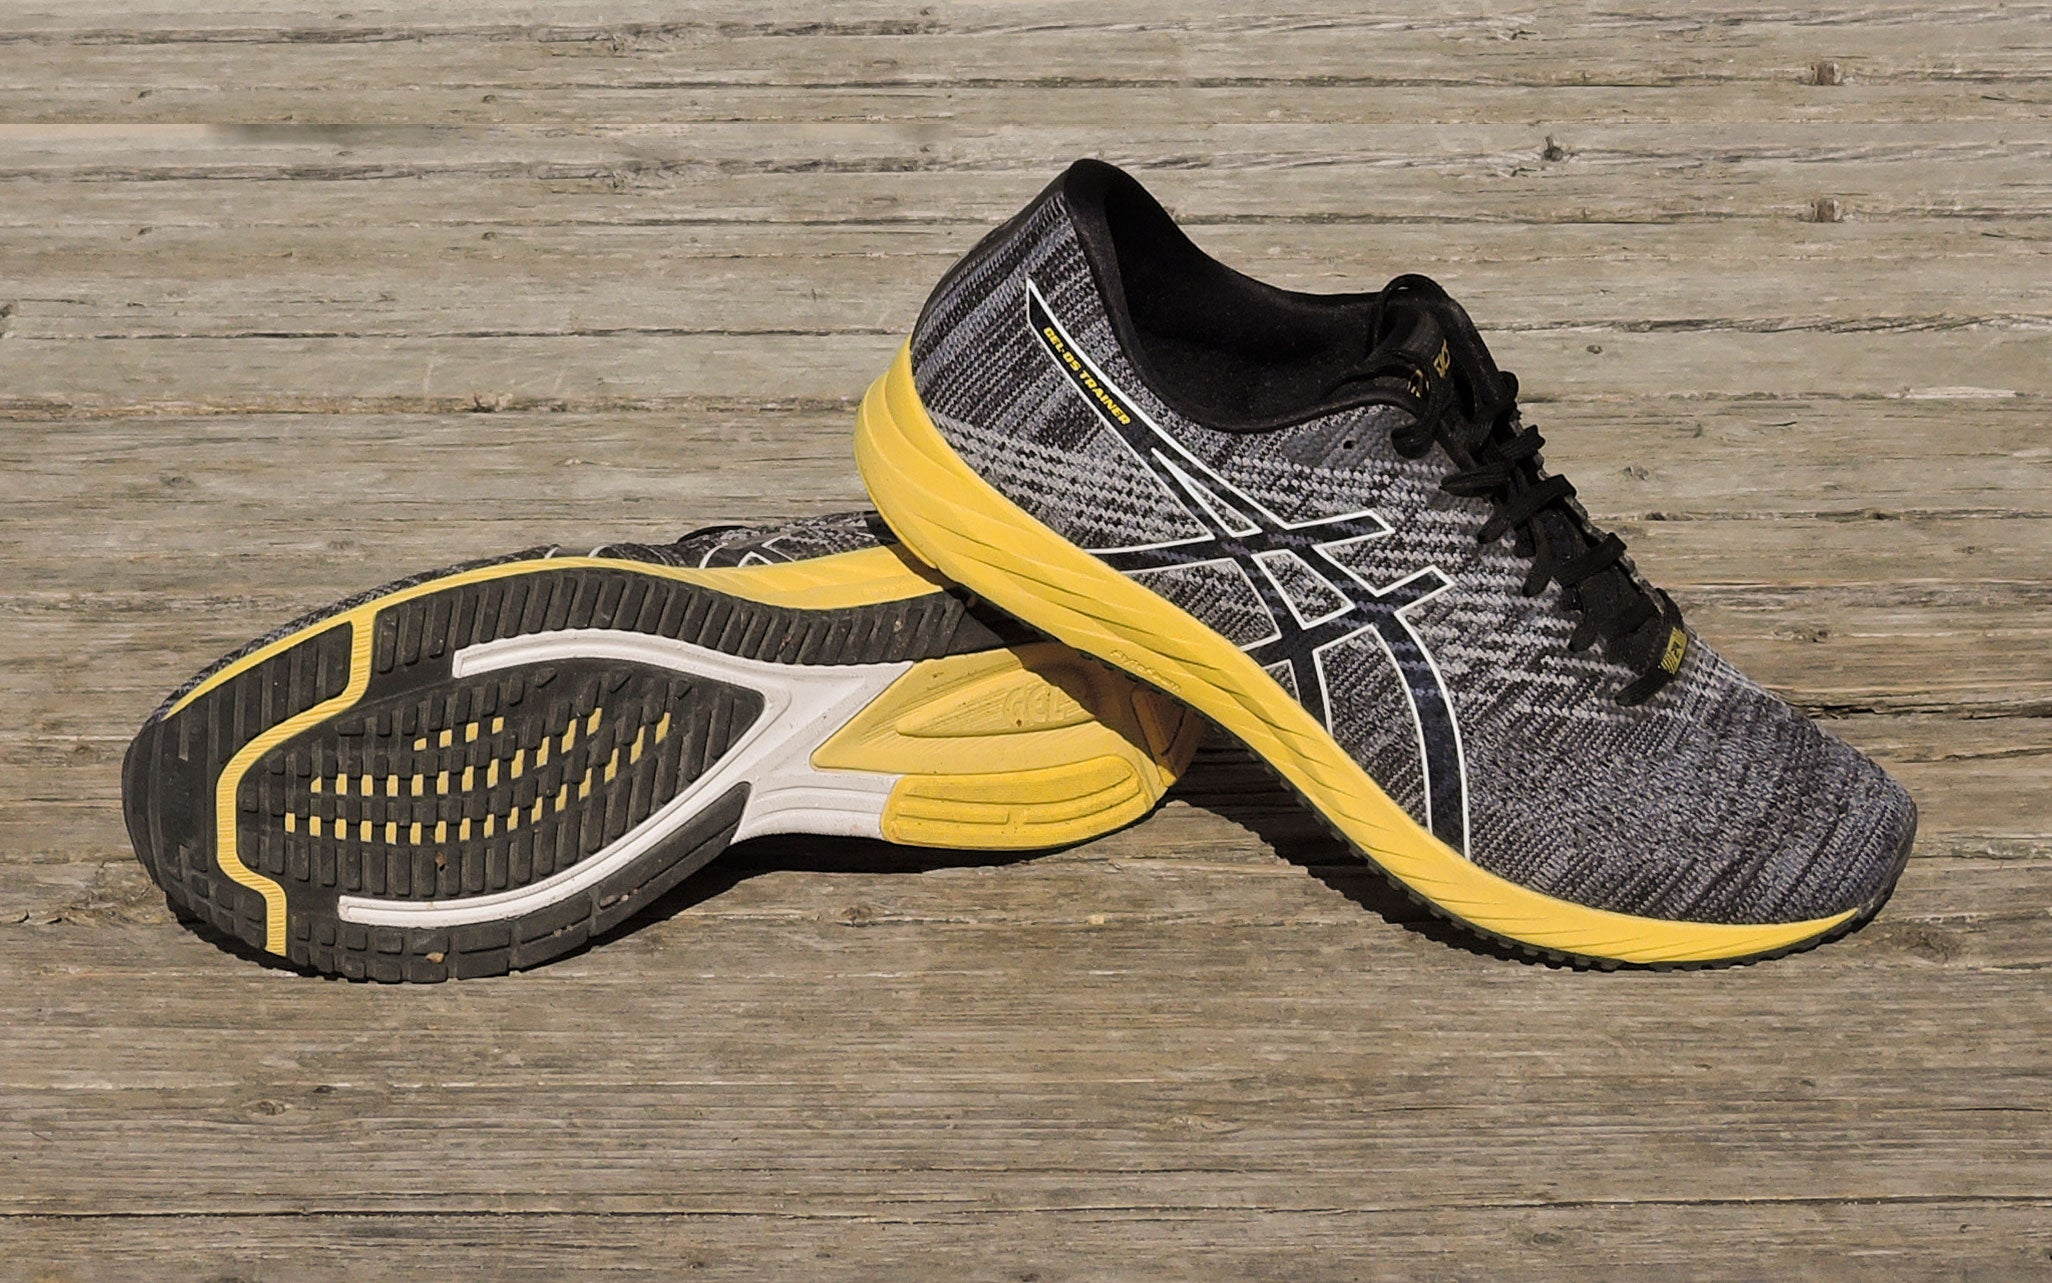 Asics connected shoe for trail running in black and yellow